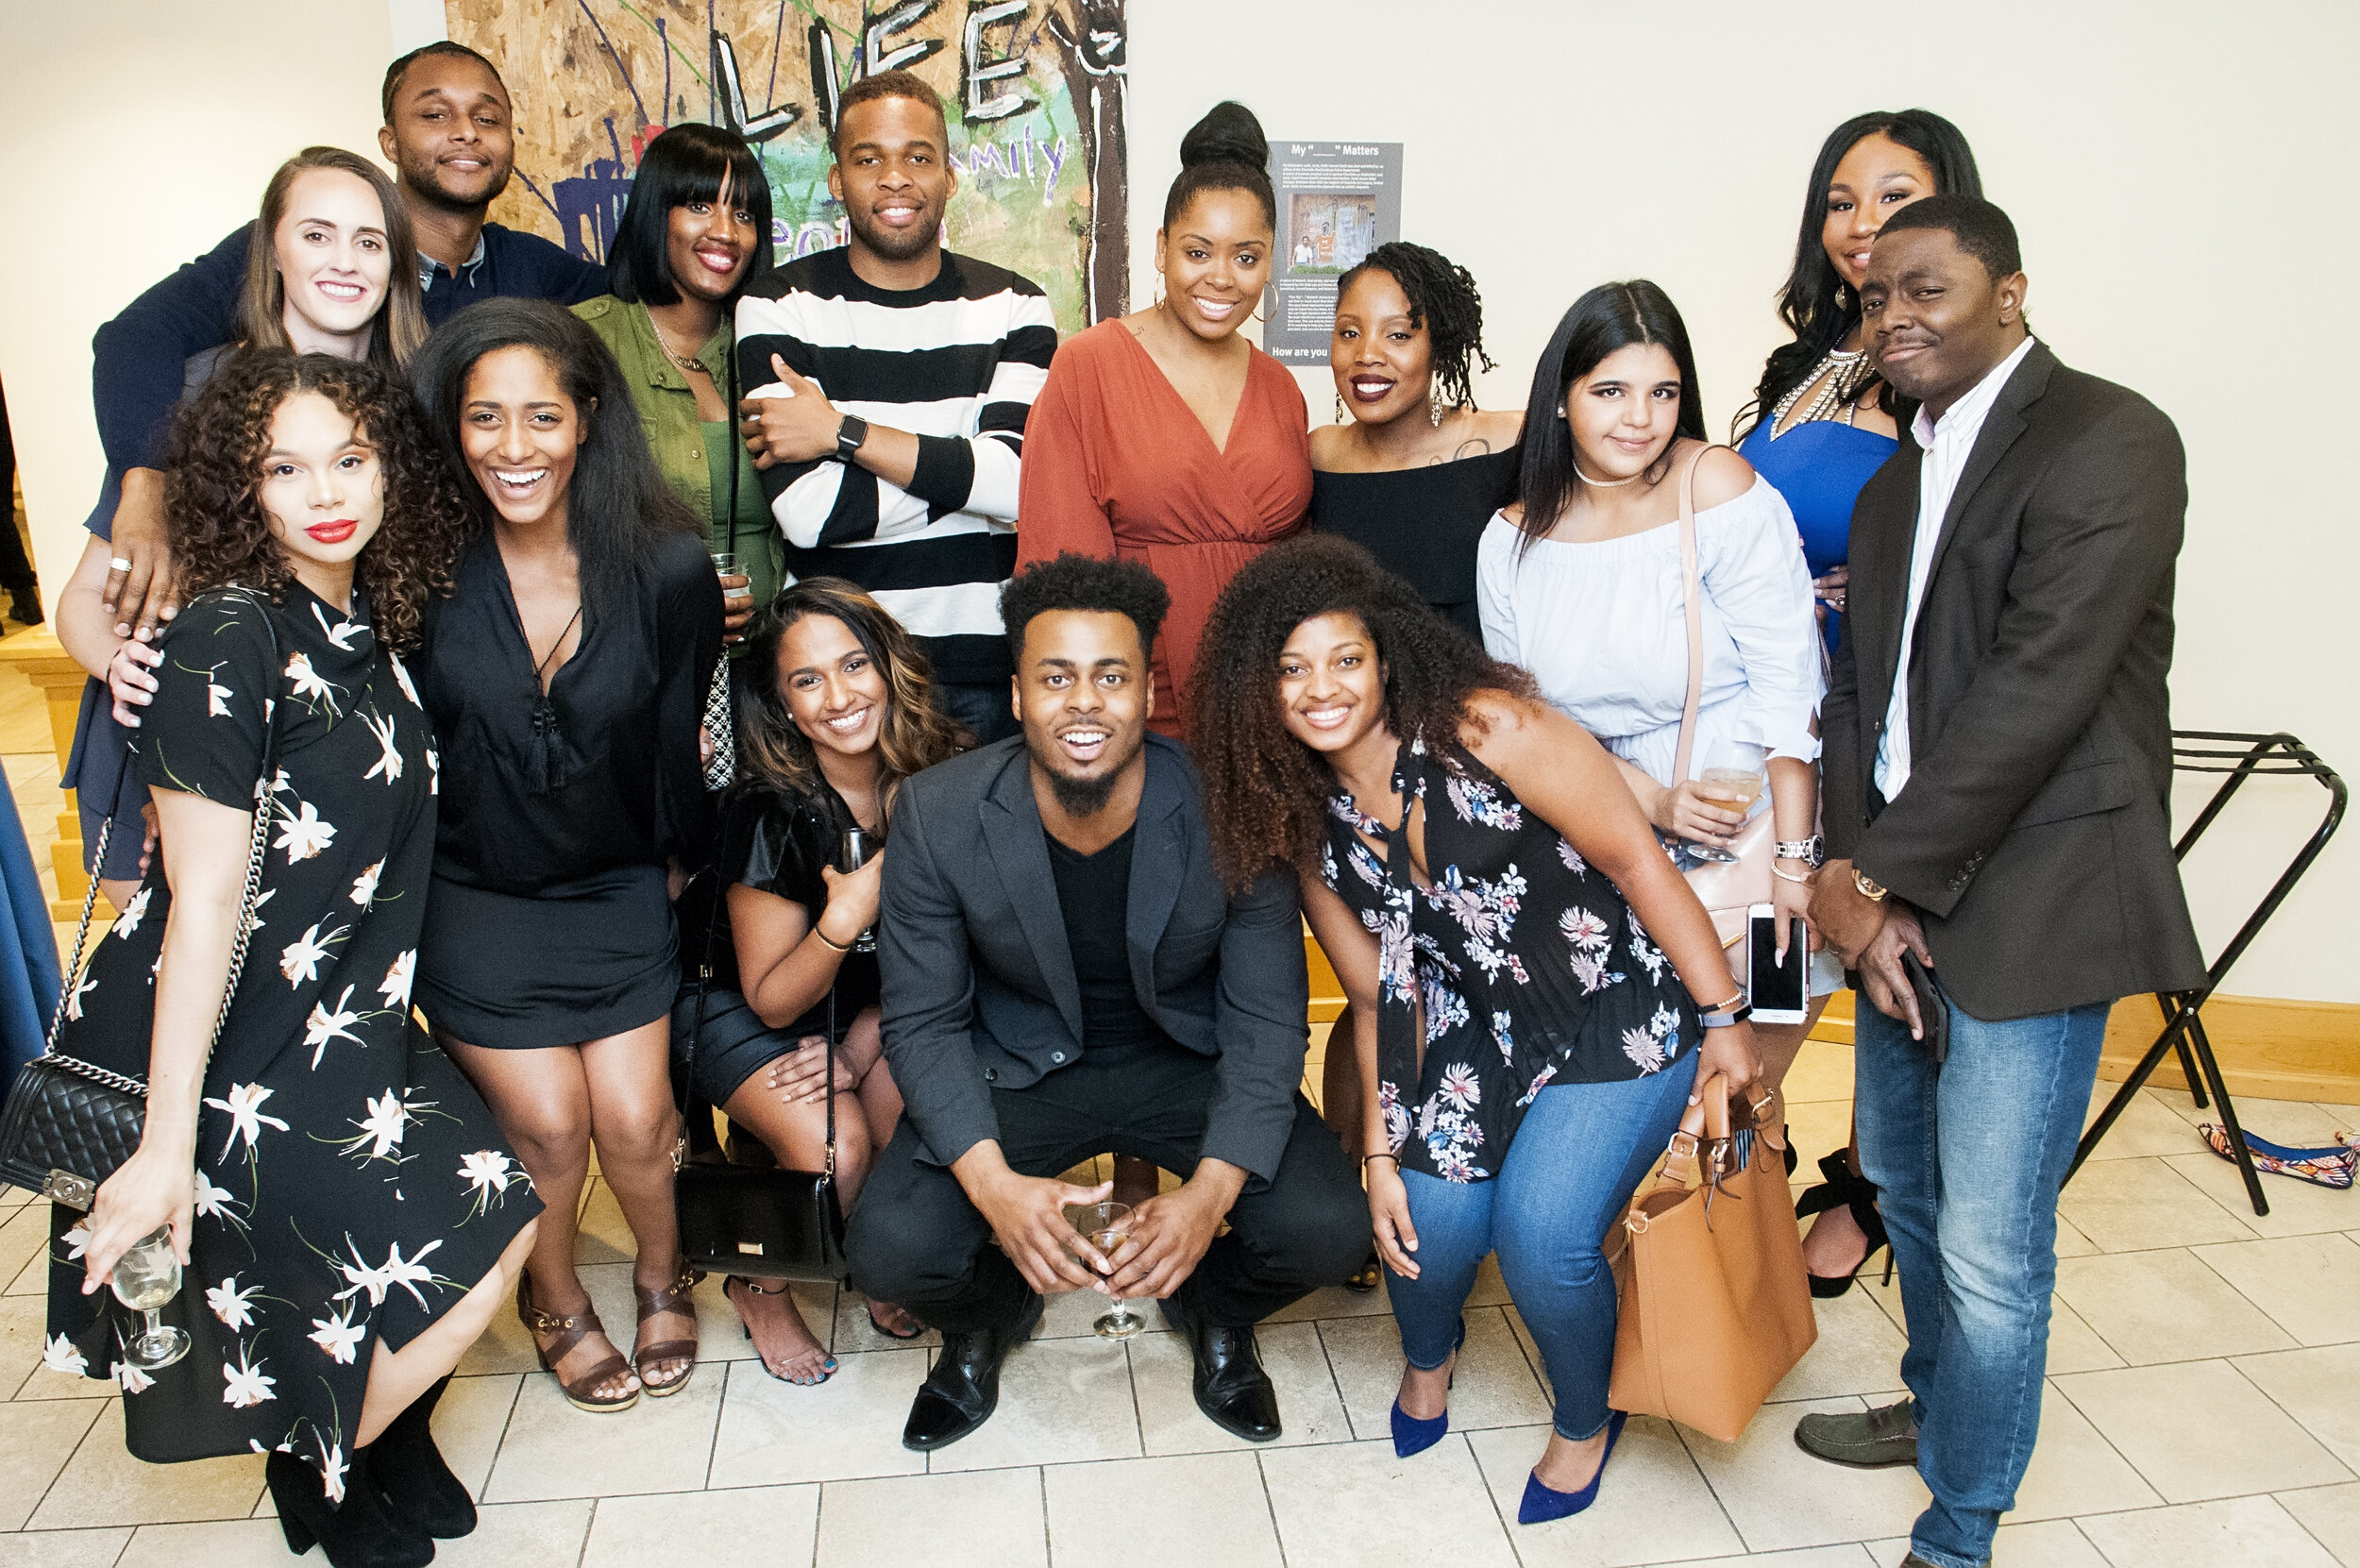 Levine Museum of the New South Presents The Taste of the New South 2-23-18 by Jon Strayhorn 230.jpg